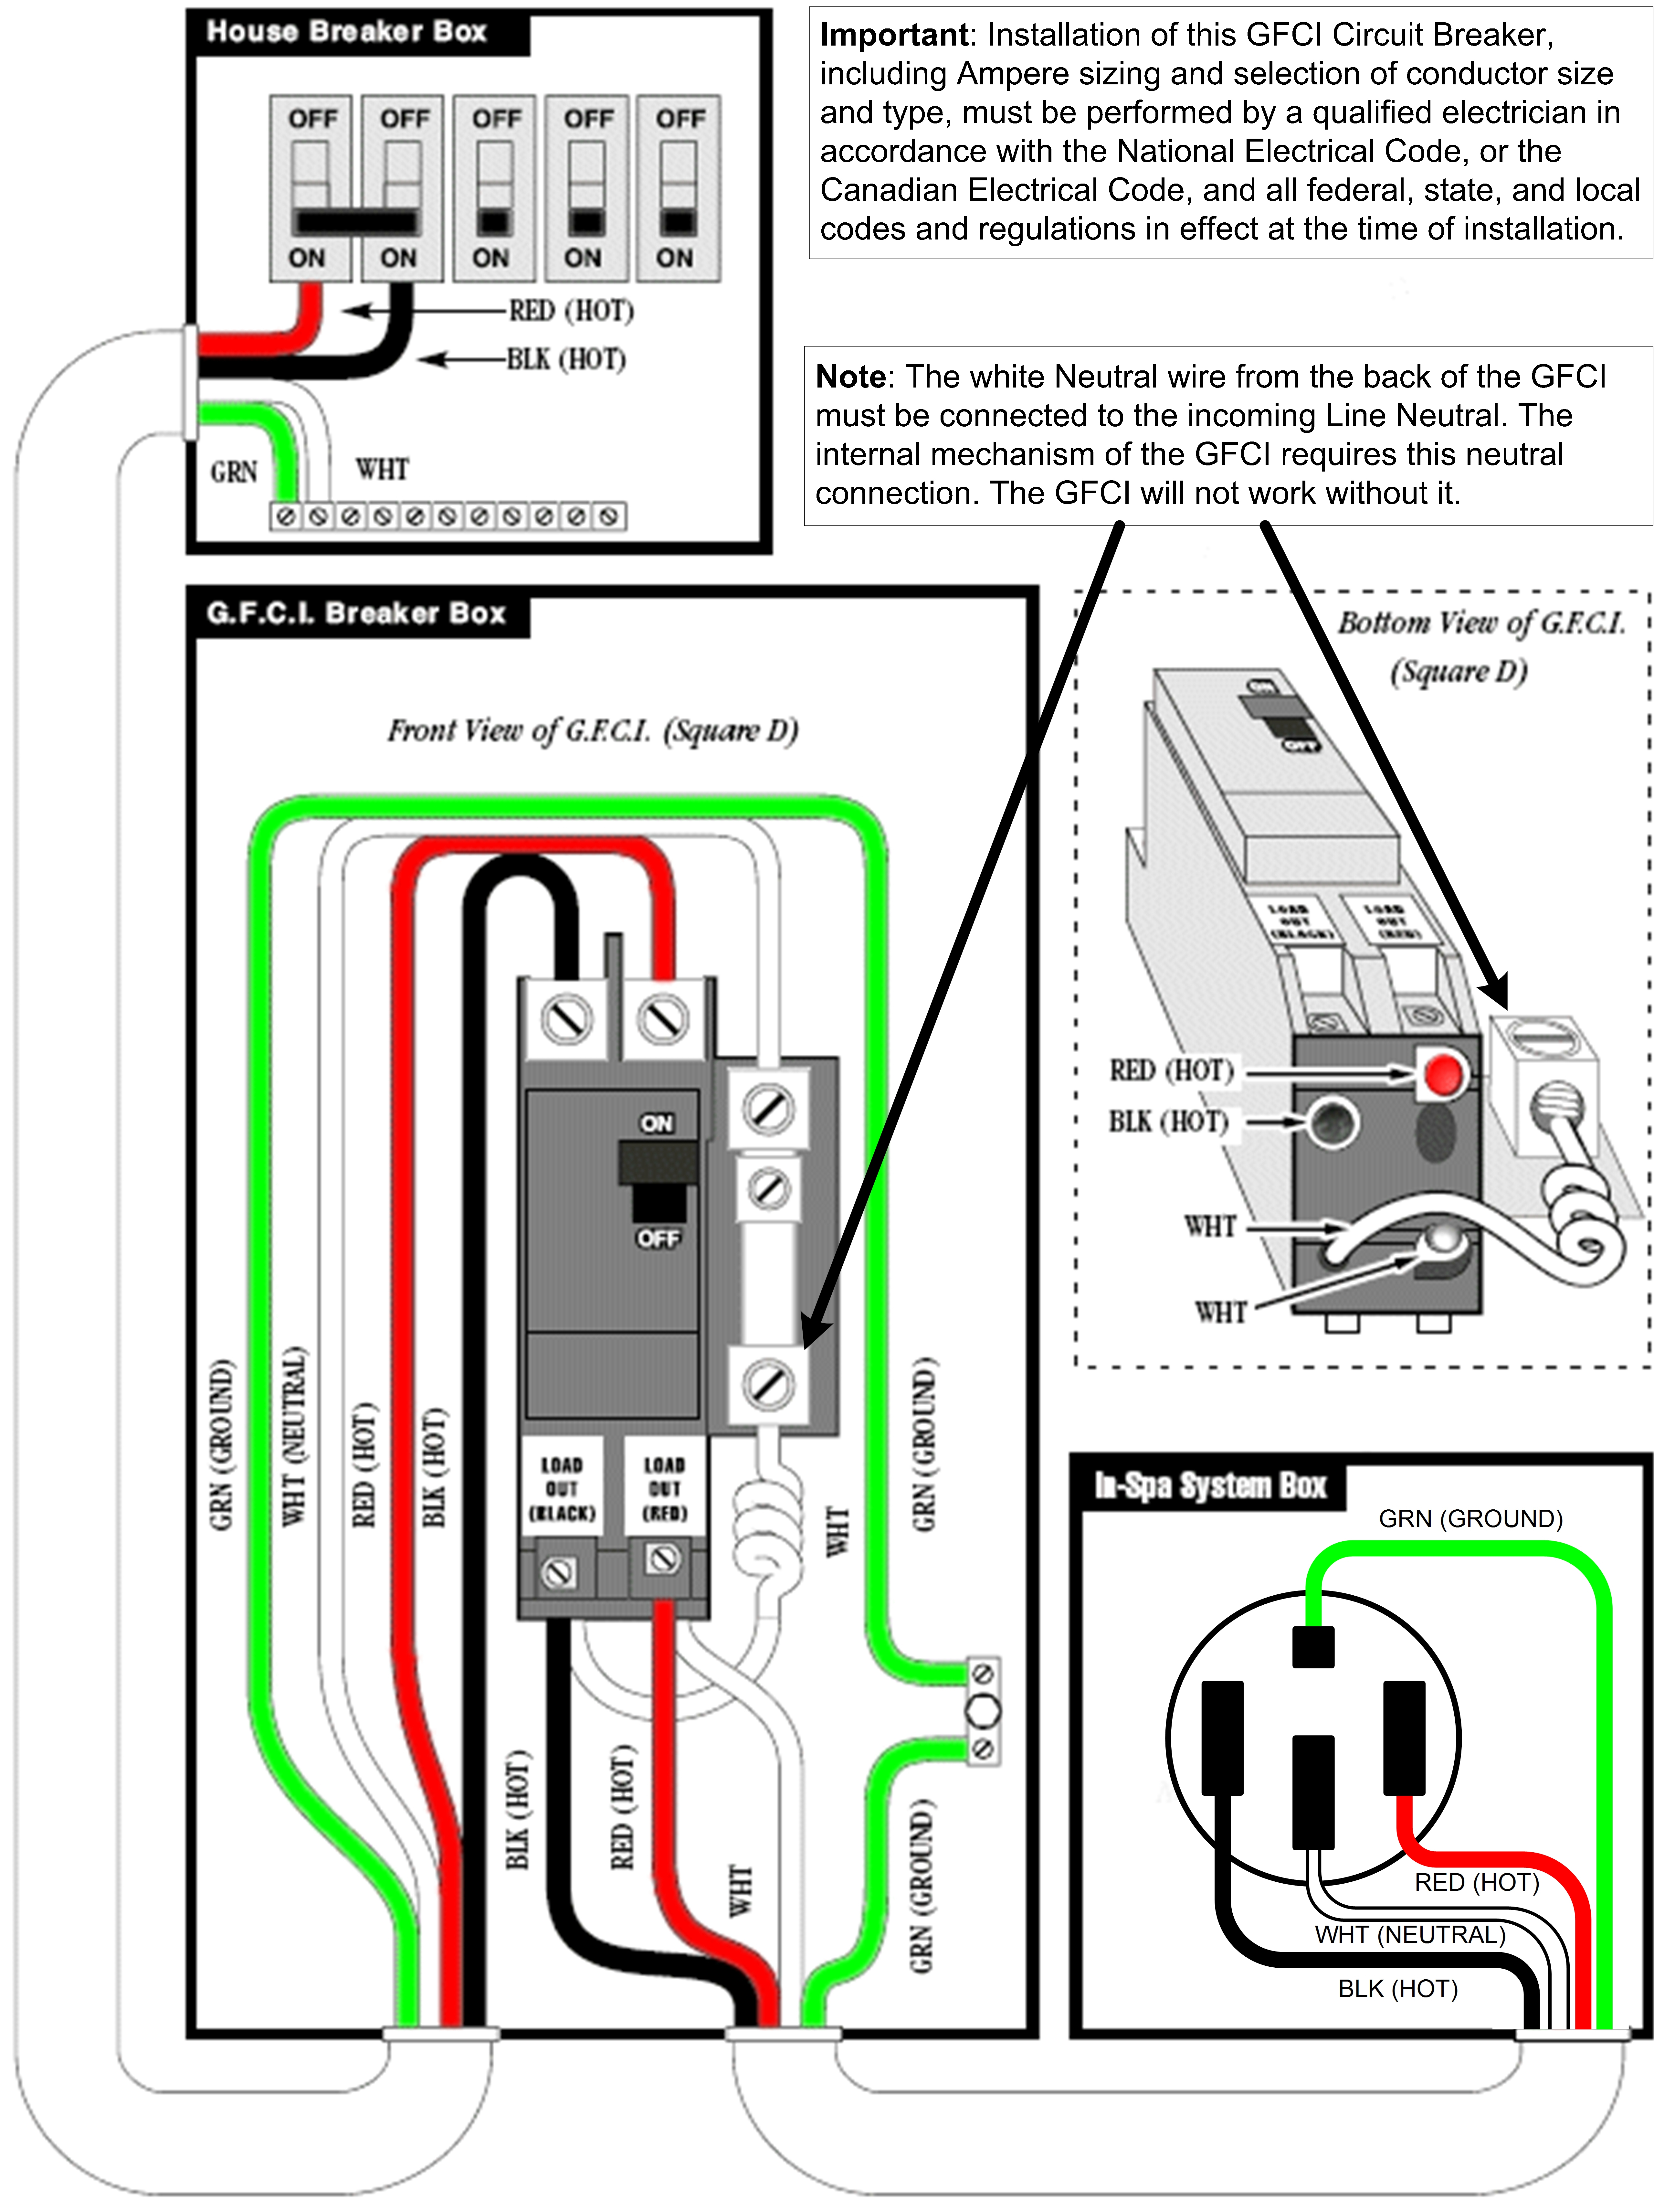 4 Wire Hot Tub Wiring Diagram | Wiring Diagram - Hot Tub Wiring Diagram